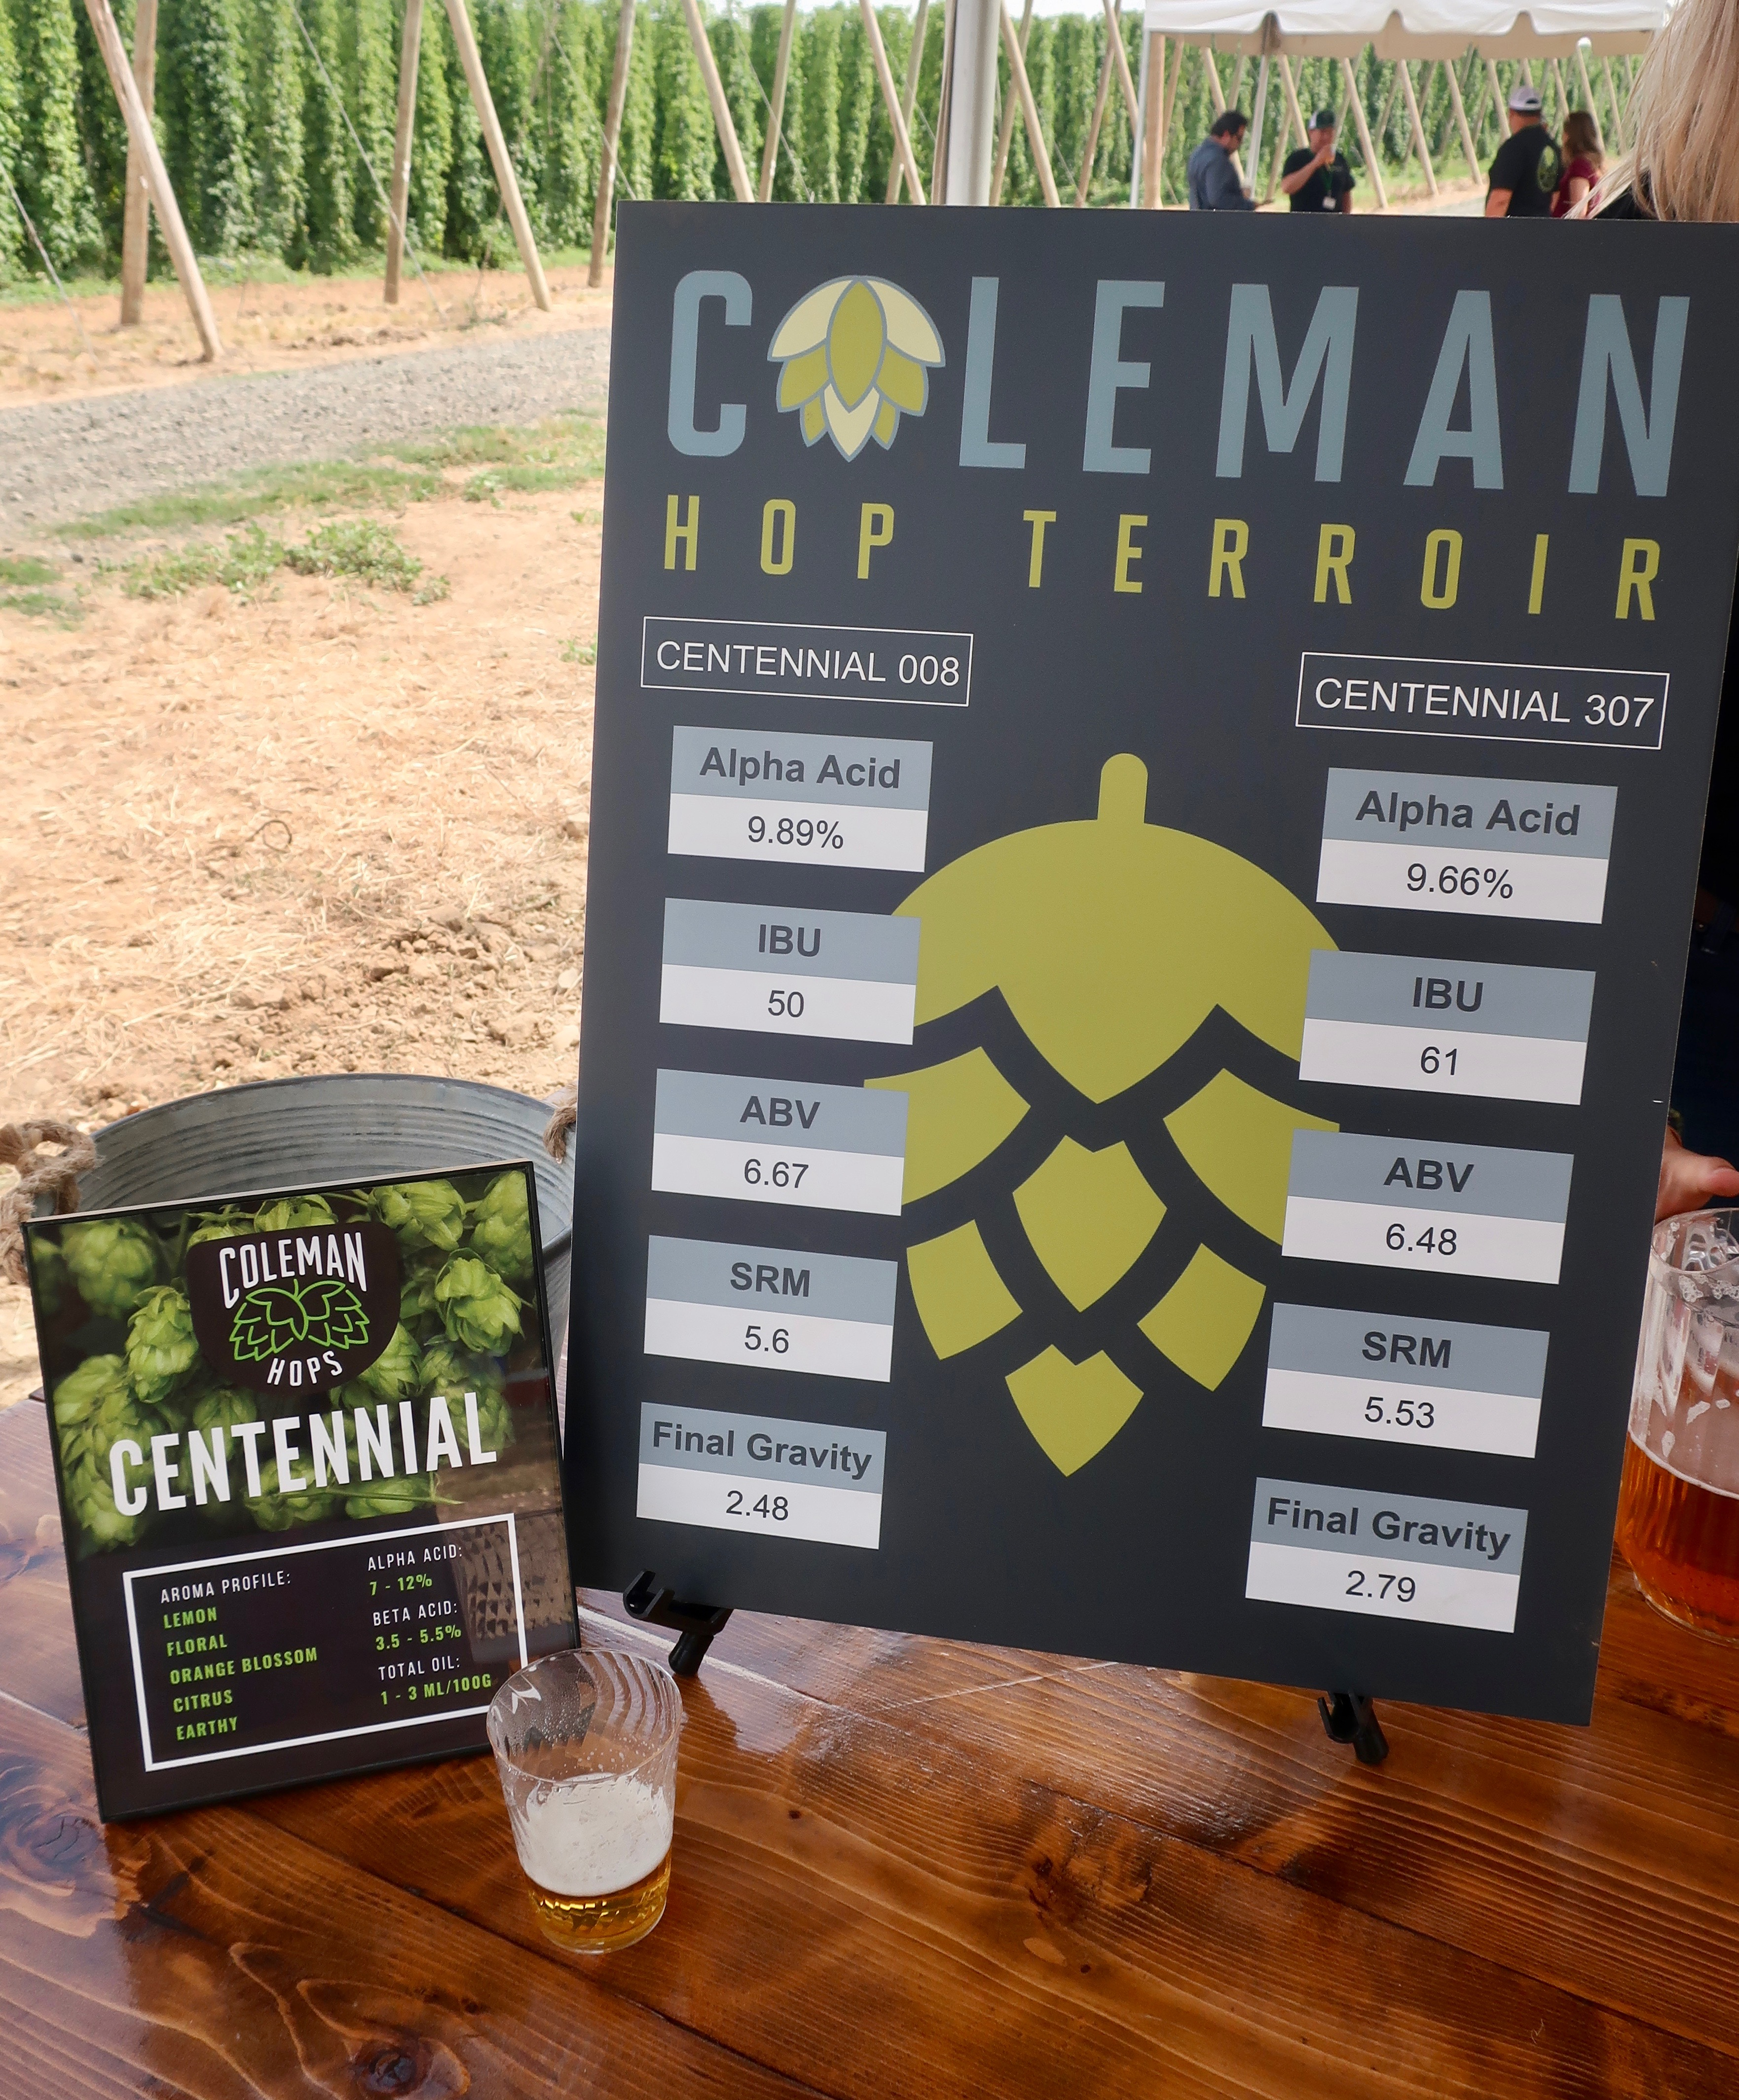 Coleman Hop Terroir featured two beers brewed with Centennial hops, each from different farms. There was a noticeable difference between the two beers.